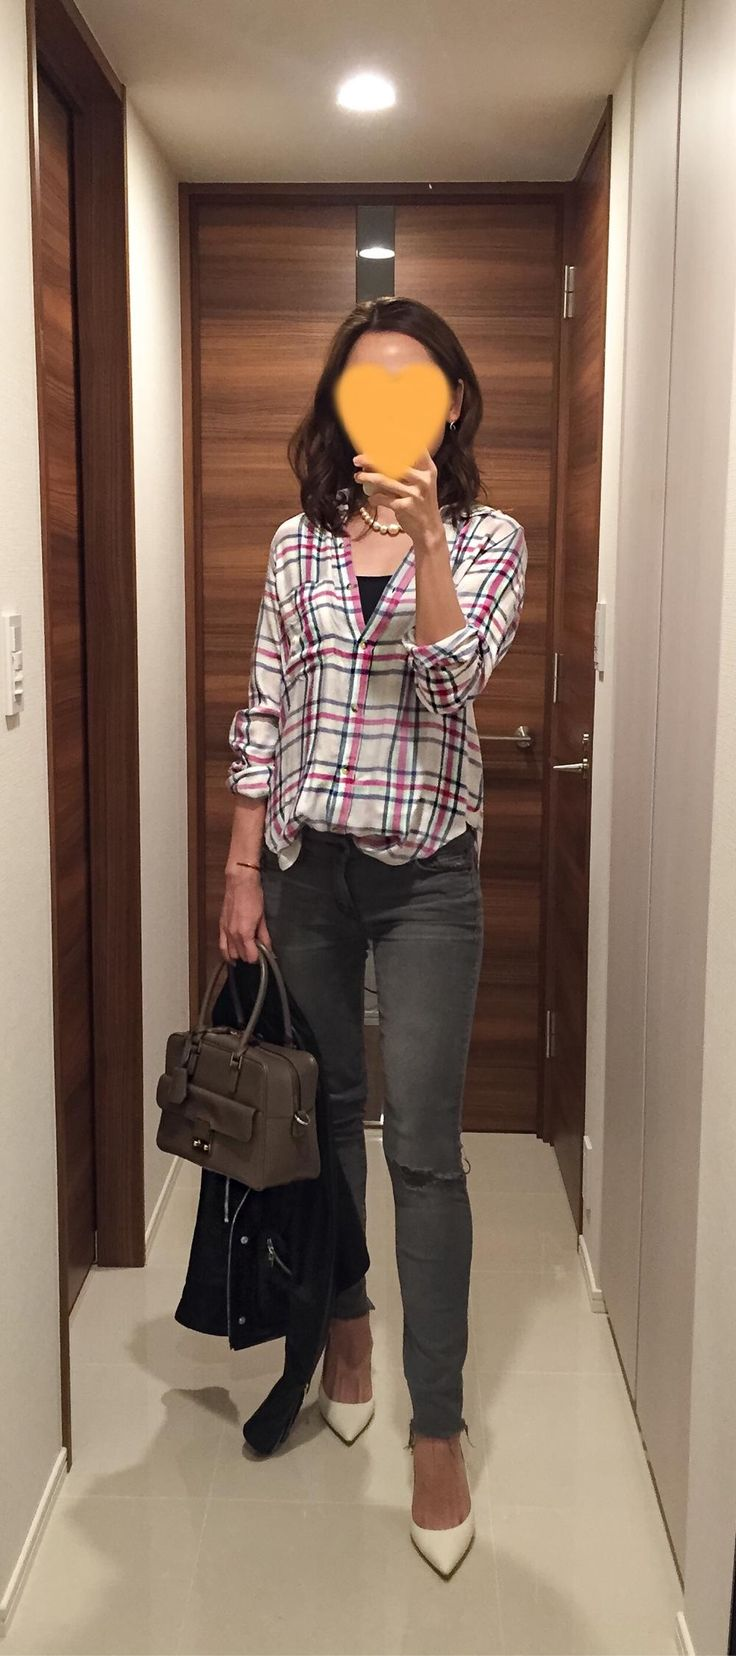 Plaid shirt: LOVERS + FRIENDS, Grey skinnies: Mother, Beige bag: Anya Hindmarsh, White pumps: Jimmy Choo